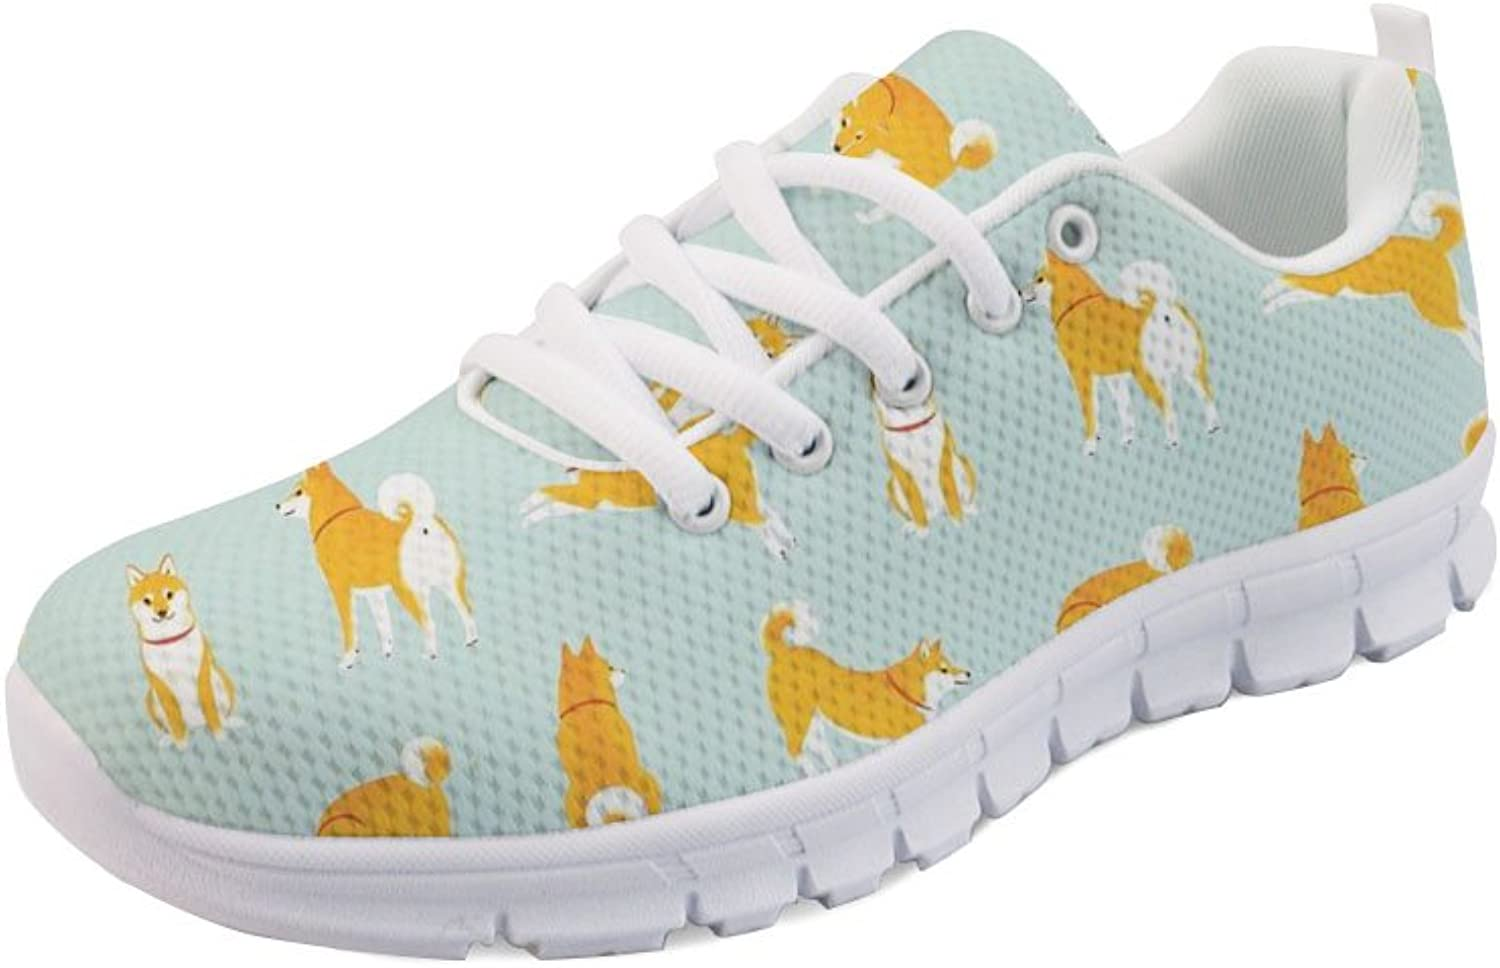 STARTERY Women's Cute Animal Pattern Lightweight Sport Sneaker Tennis Training shoes